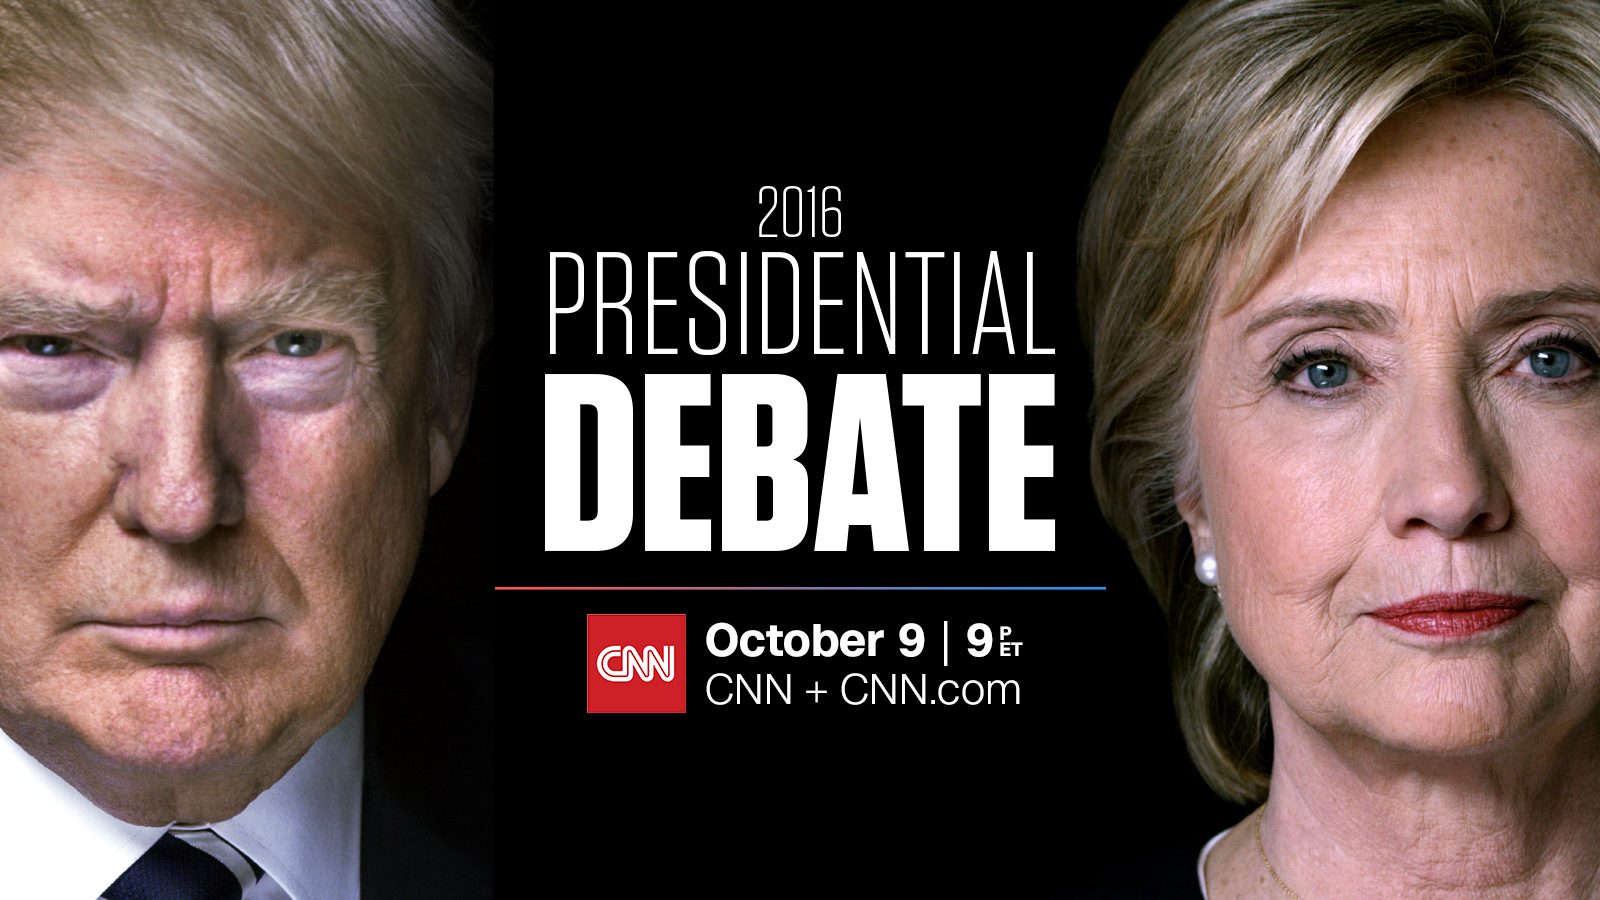 CNN To Live Stream The Second Presidential Debate on CNN.com